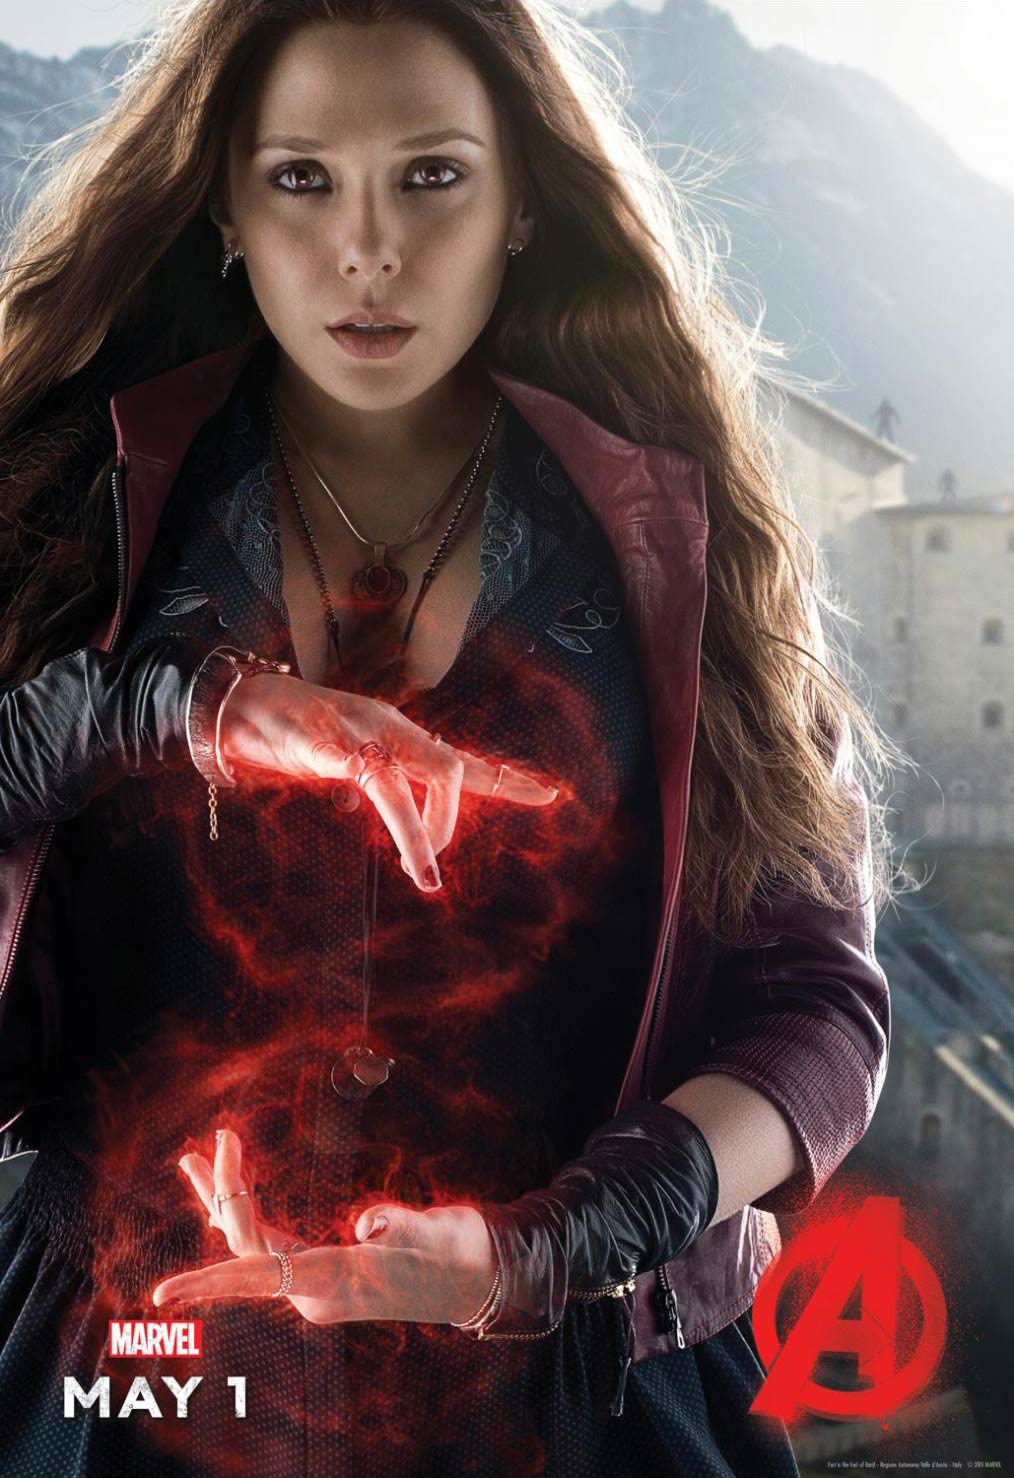 <strong>Elizabeth Olsen as Scarlet Witch</strong>